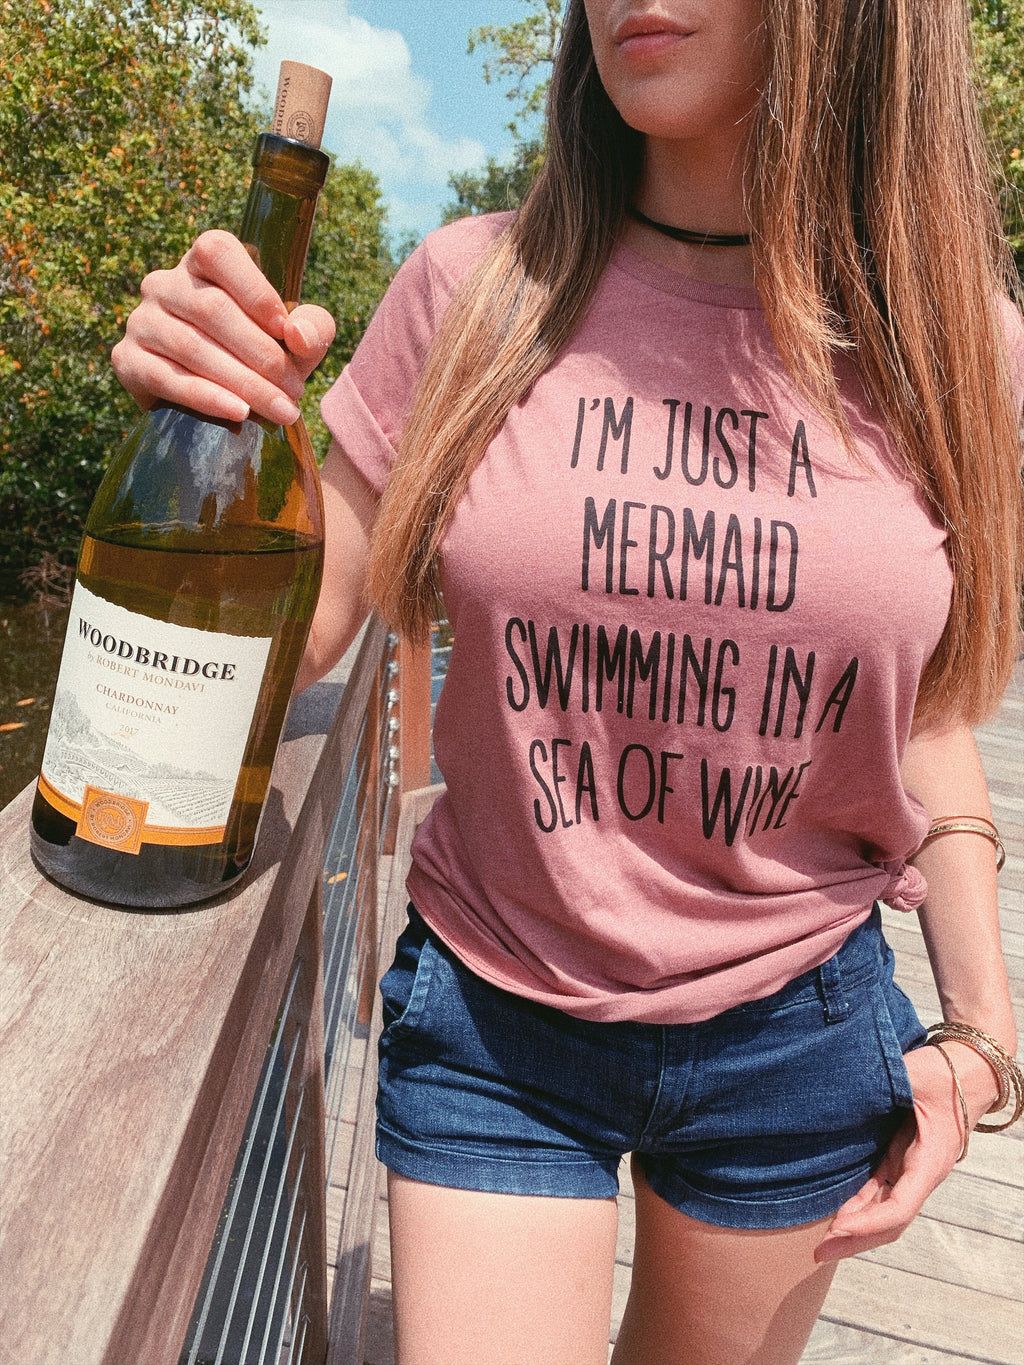 I'M JUST A MERMAID SWIMMING IN A SEA OF WINE